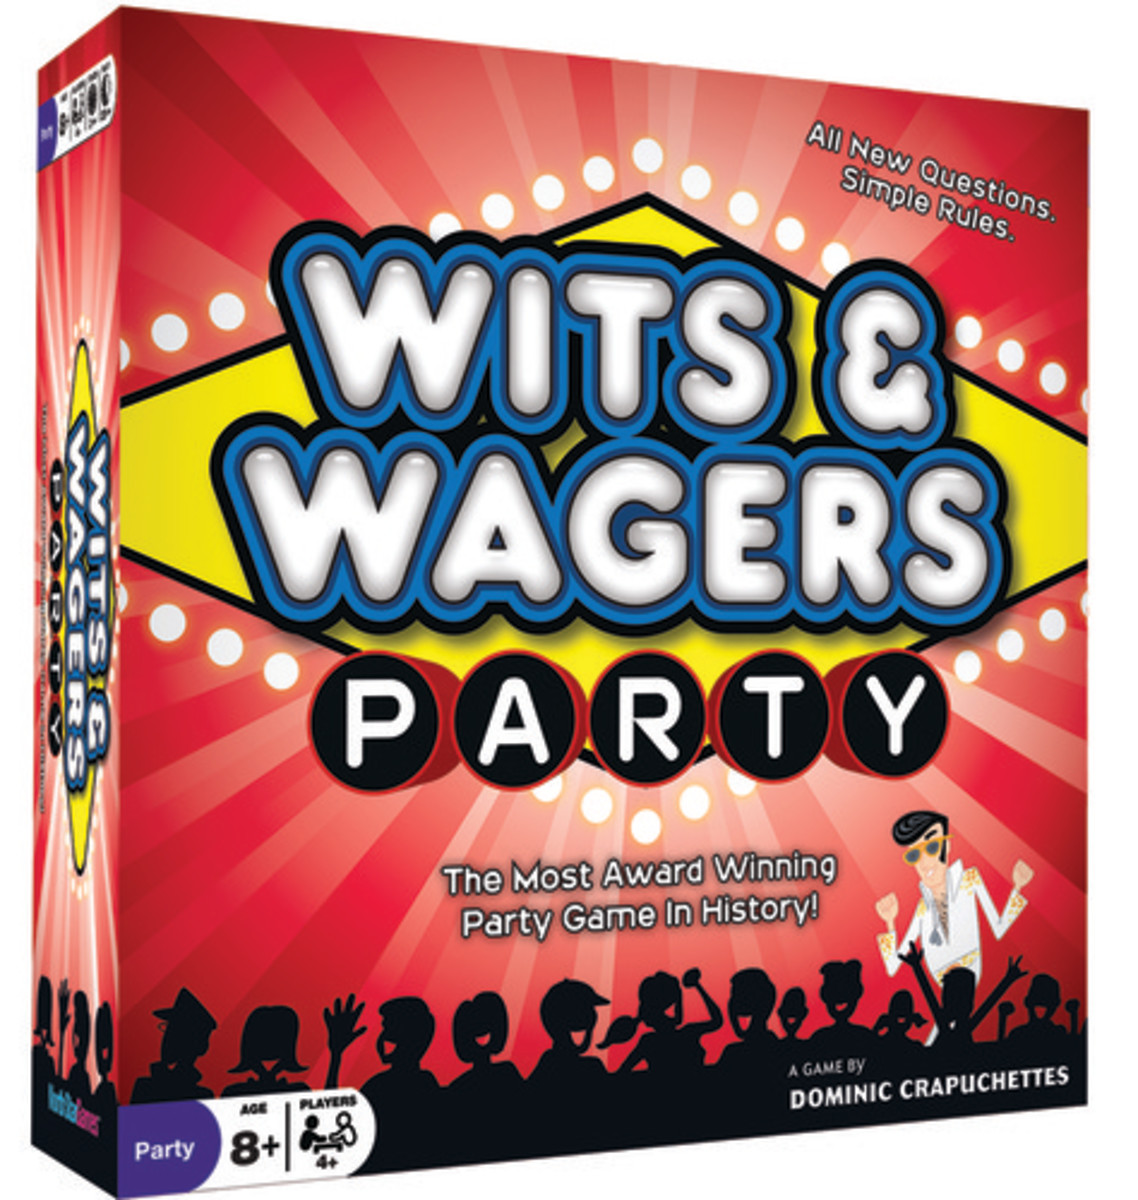 Best Party Board Games For Adults HobbyLark - 24 smart ass kids definitely know well